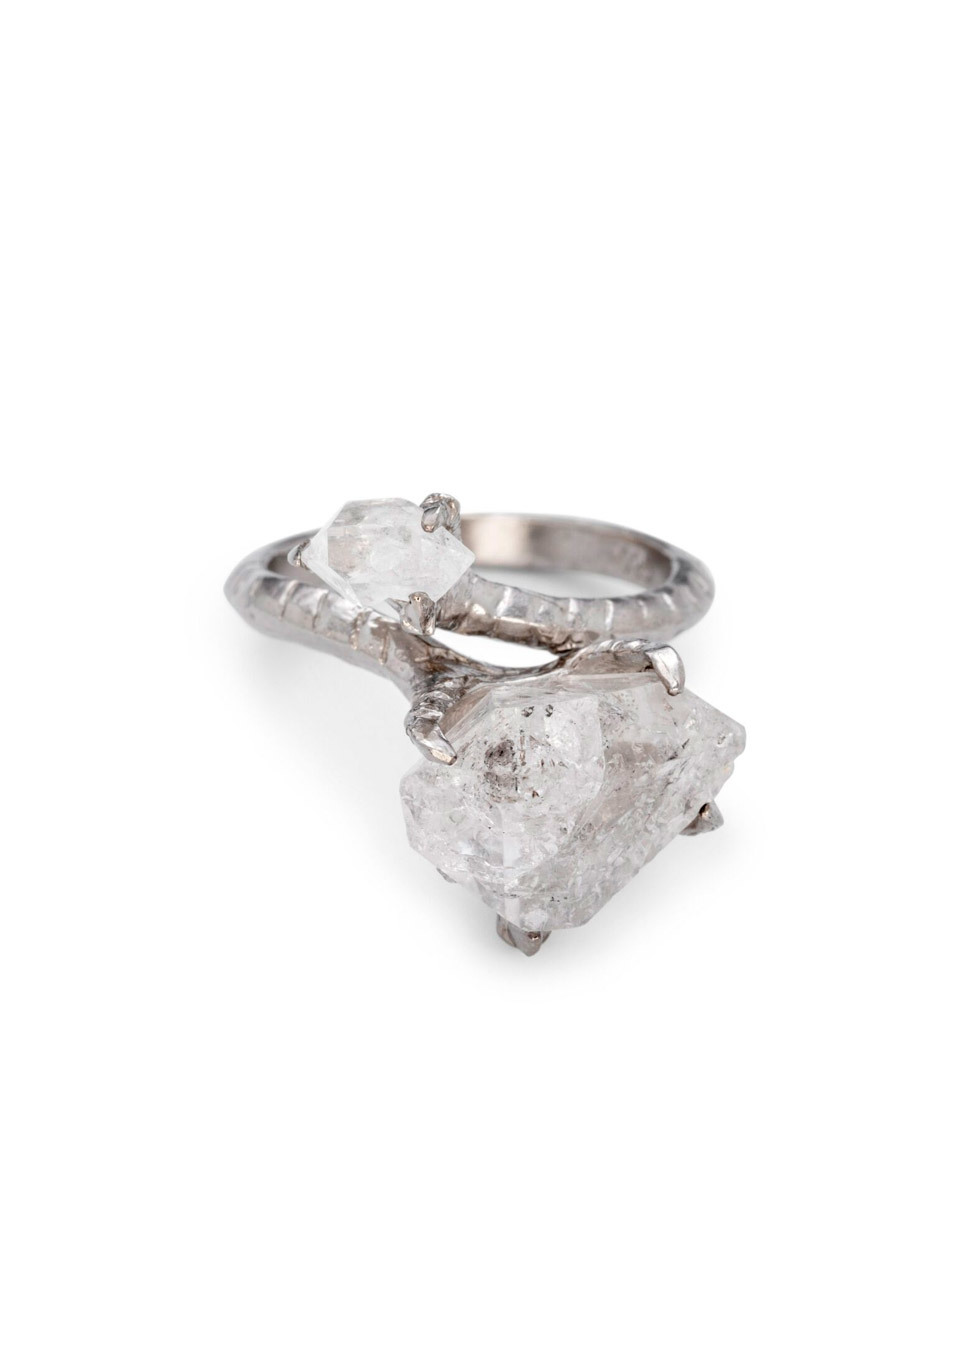 BJ0RG JEWELLERY HERKIMER CLAW RING SIZE L